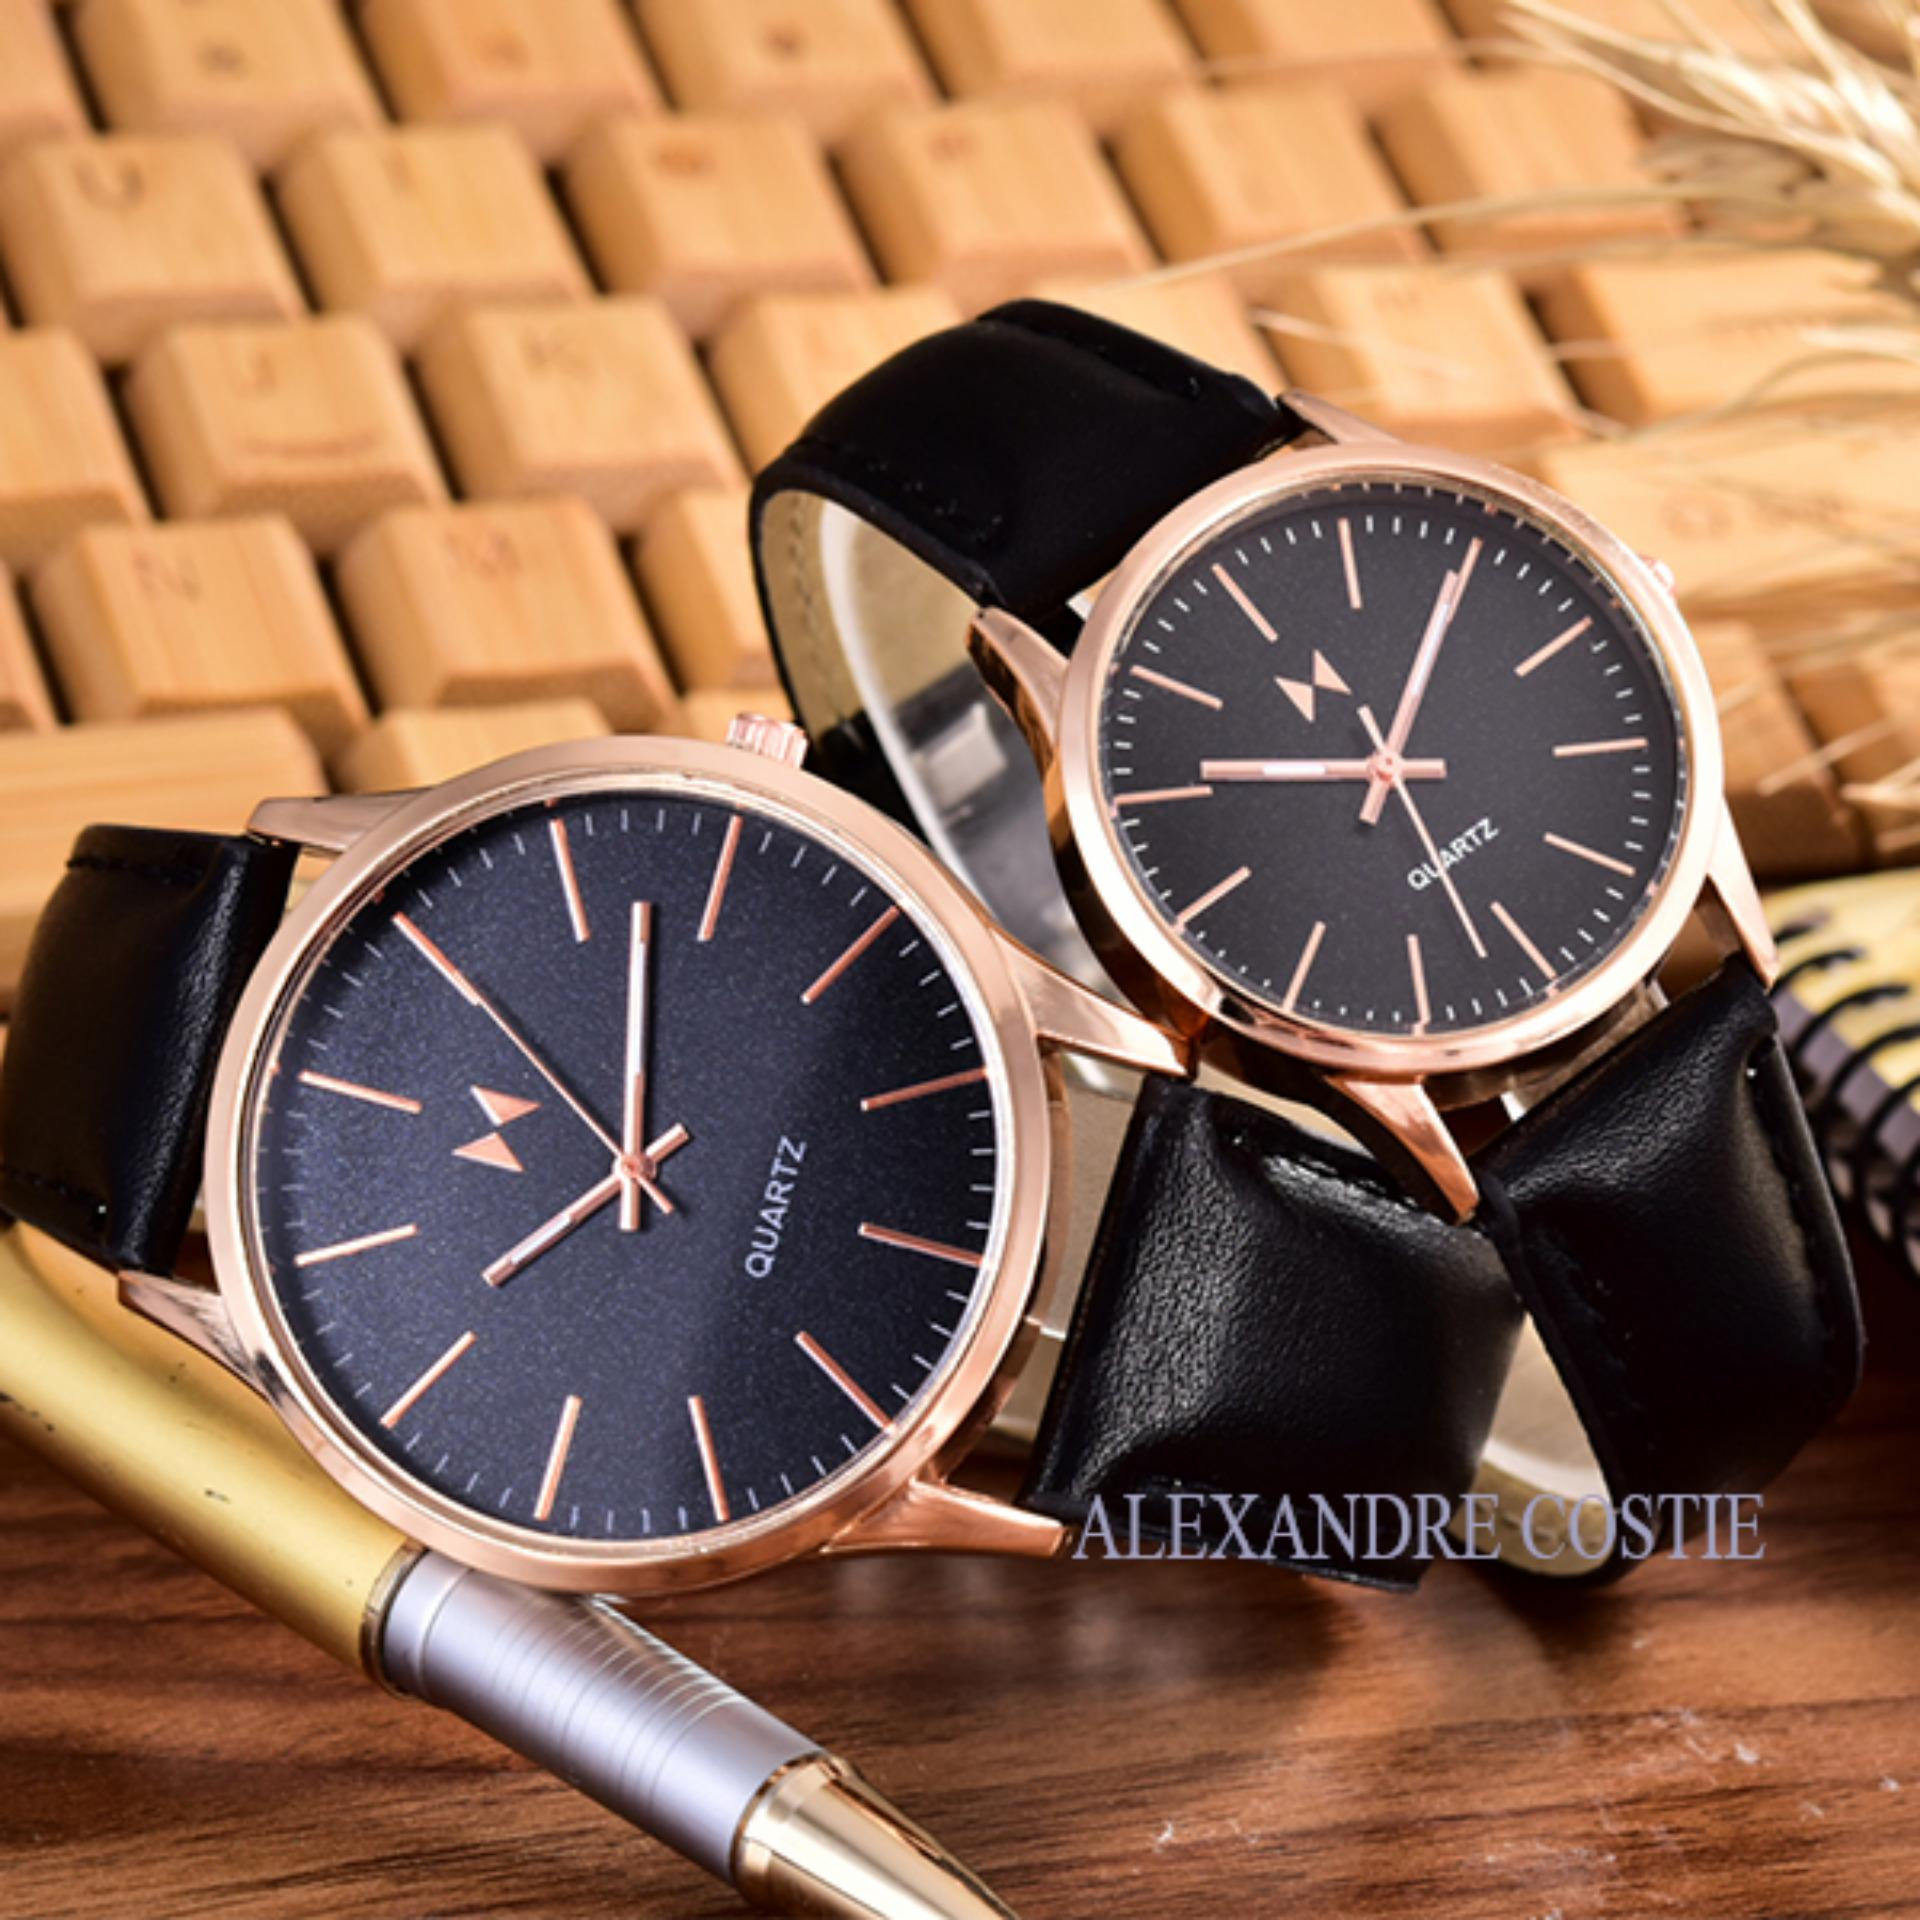 ... BLACK LEATHER STRAP Couple Terbaru ... Source · Alexandre Costie - Bonico - Jam Tangan Pria dan Wanita - Body Rose .